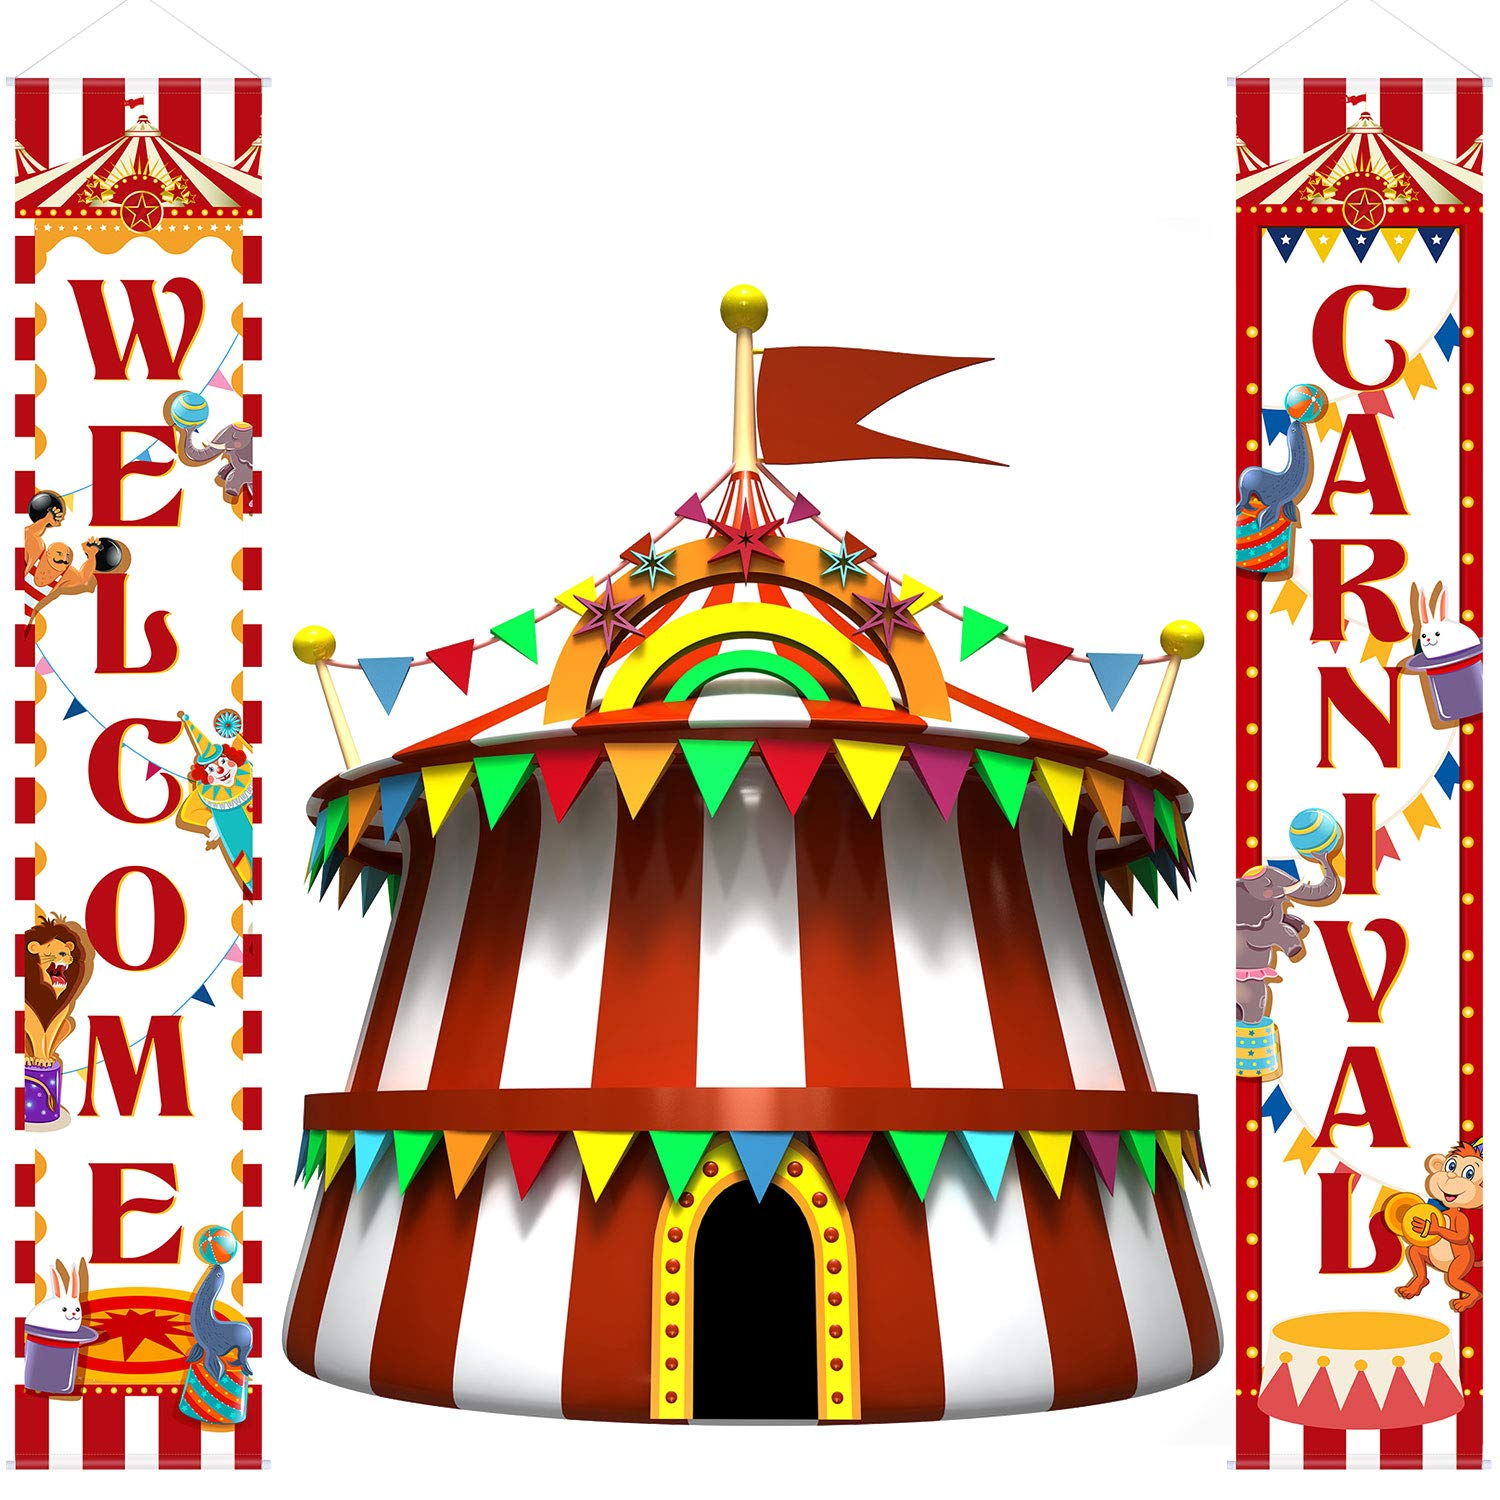 Carnival Decoration Porch Sign Carnival Circus Birthday Party Welcome Banner Decoration Set Circus Carnival Banner Carnival Party Supply Decor Home Decorations (Red and White)